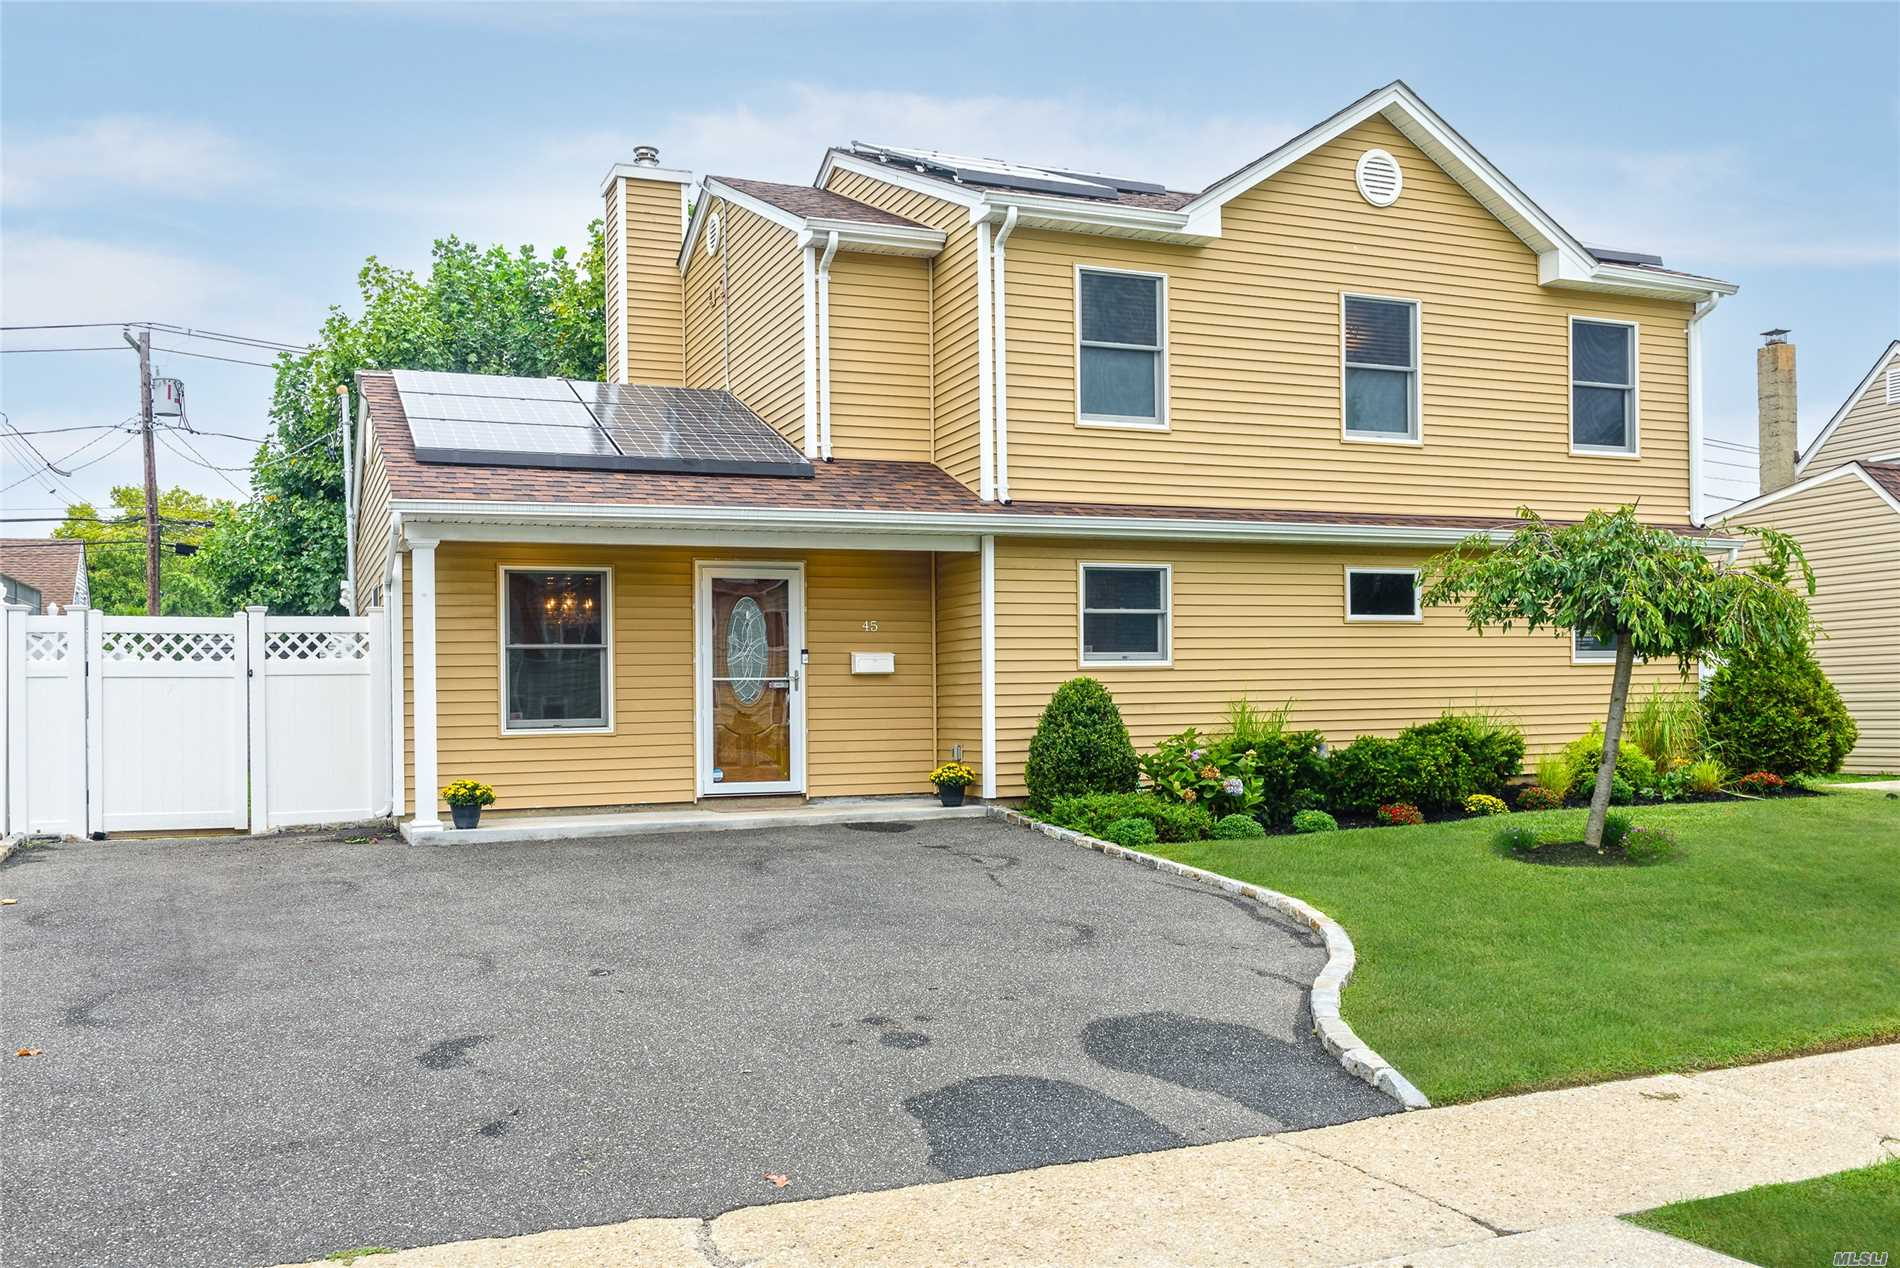 Colonial Completely Renovated '14. Features Gourmet Kit W/Granite, Ee Stainless Apps, C/T Flrs, Frml Dining Rm, Lr W/Sliders To Patio, Den, Office, Master En Suite W/Wic & Bath, 2 Addt'l Bdrms, Laundry & Bath On 2nd Flr, Solar Panels (Leased), Full Attic, Shed, Led Lighting,  Alarm-Ready. 2014: Roof, Vinyl Siding, Cac, Buderus Boiler, Hw Heater, 200 Amps, Ag Oil Tank, Kit & Apps, 3 Baths, Walk-In Pantry/Boiler Rm, Pvc Fenced Yard & $4K Jungle Gym! 19% Tax Reduction 18/19 & 6% Reduction In 19/20.